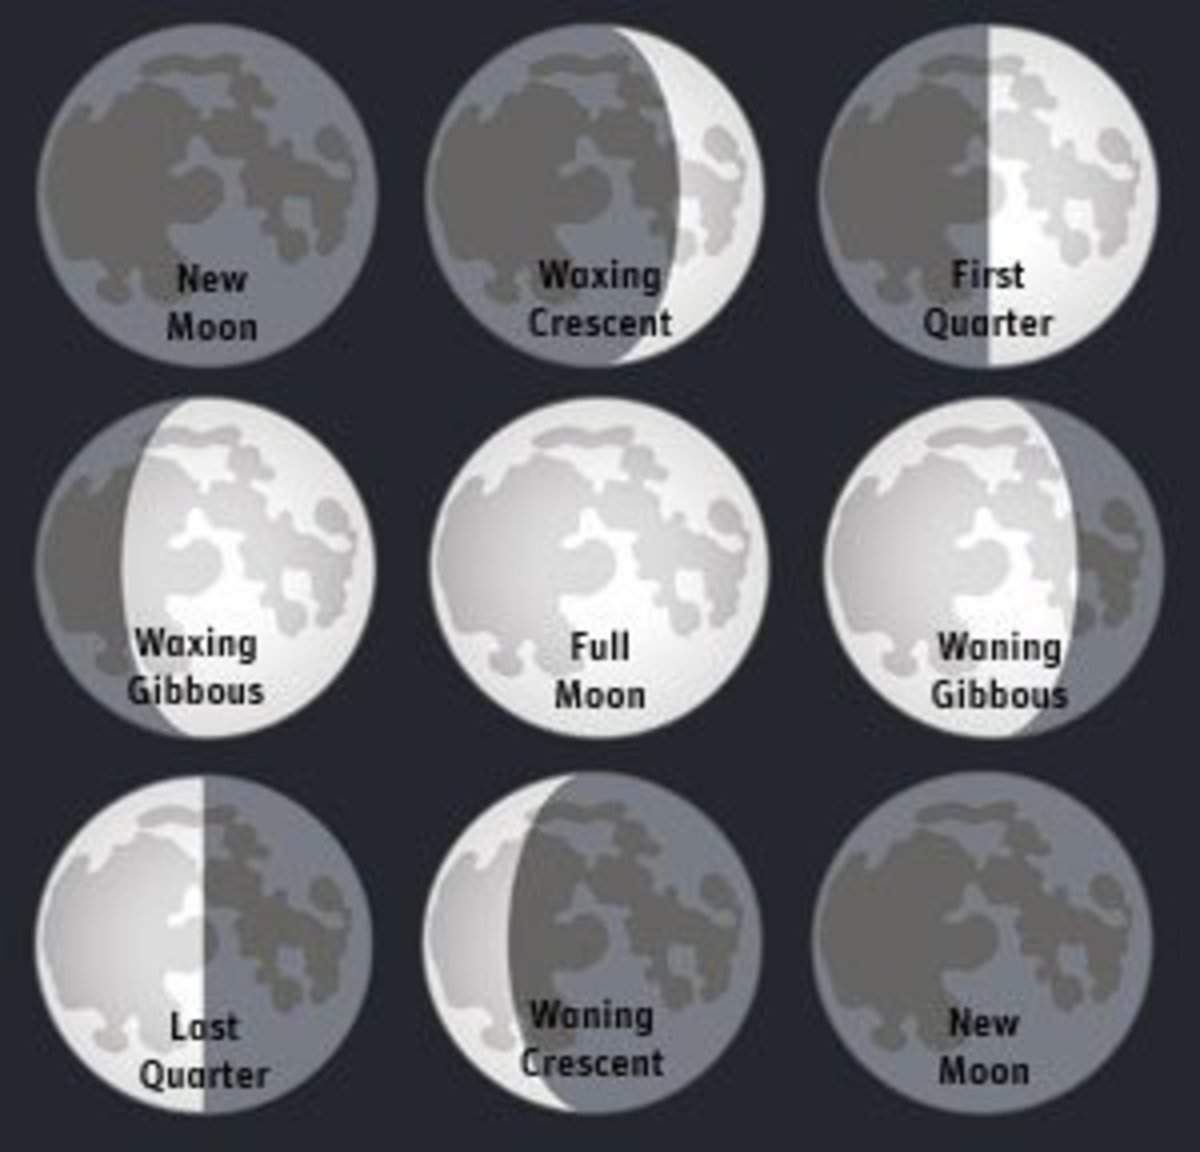 The Phases Of The Moon A Middle School Science Hands On